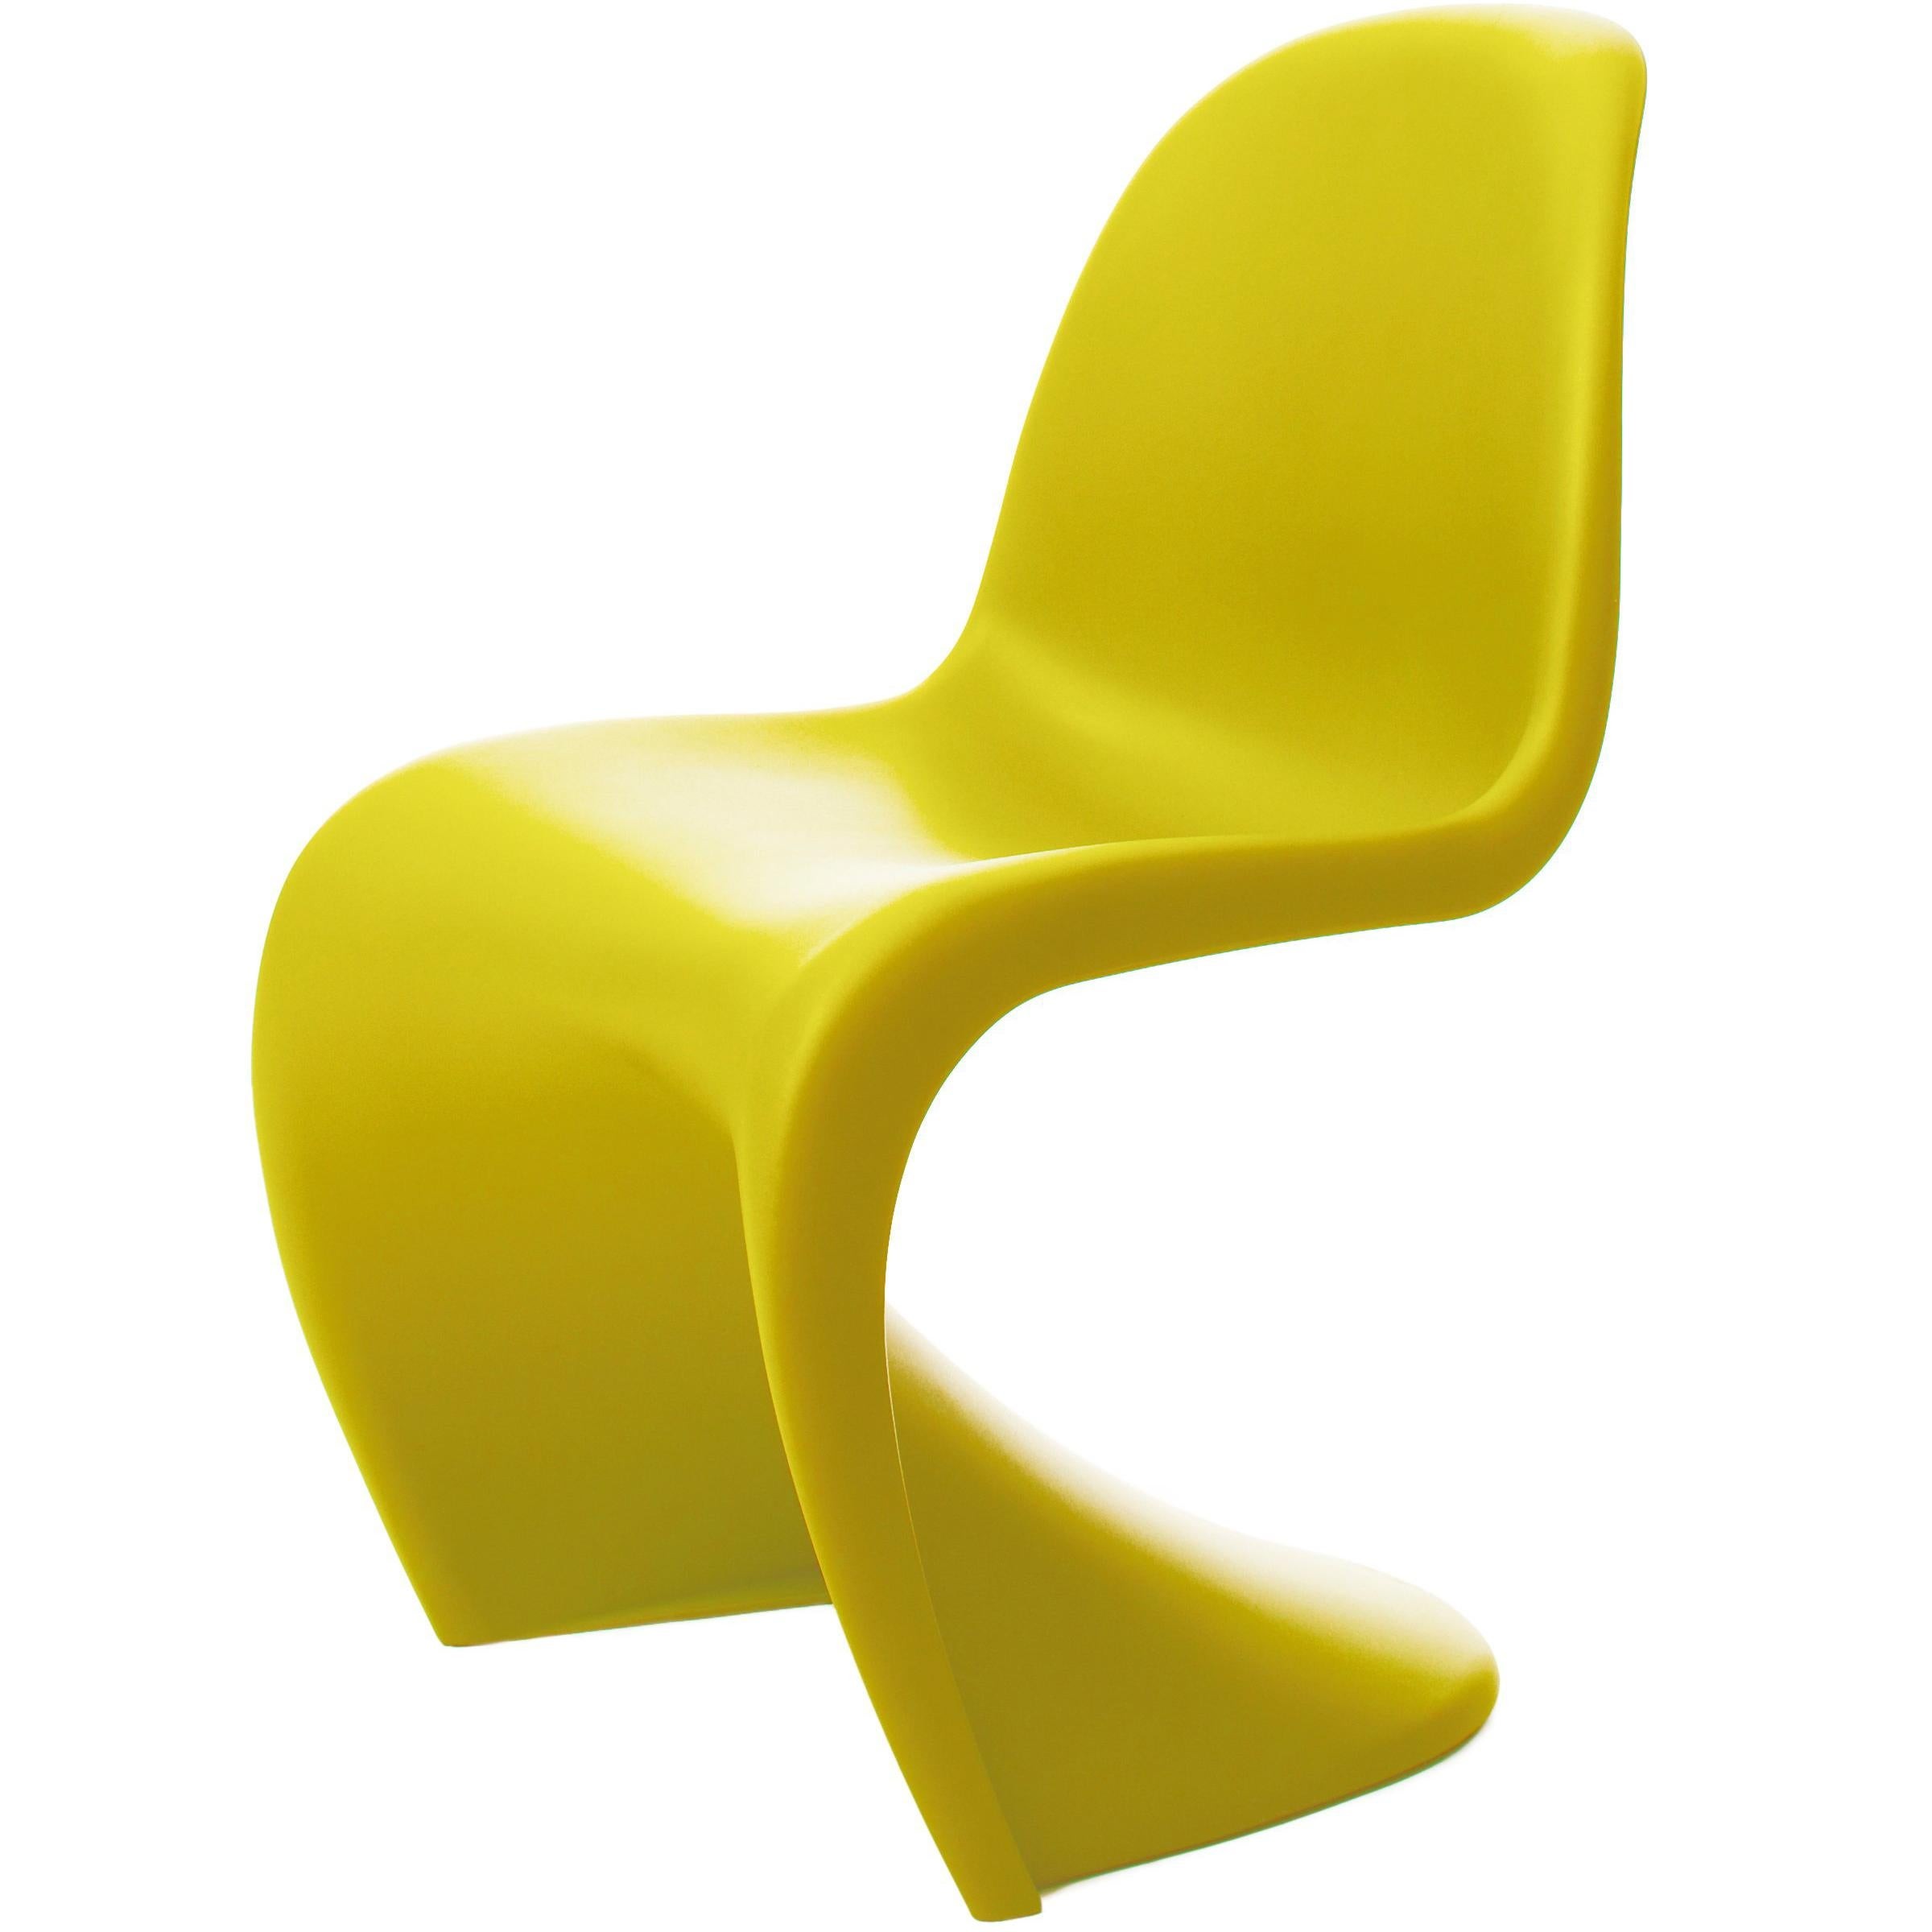 Vitra Panton Chair In Chartreuse By Verner Panton For Sale At 1stdibs